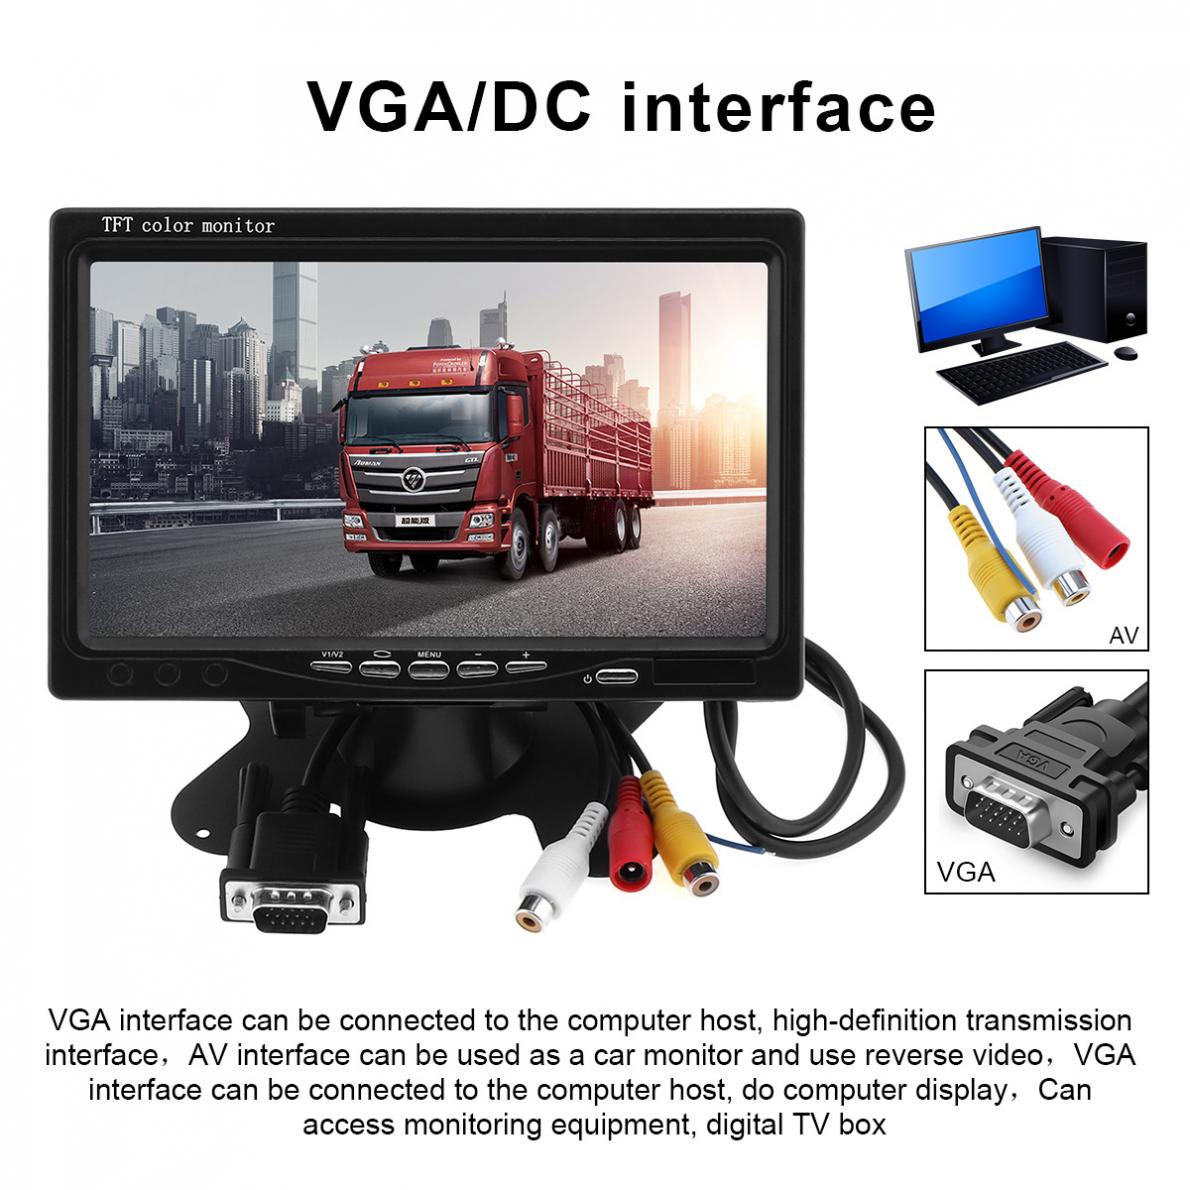 7 Inch 1024x600 12V HD TFT LCD Car VGA Home Monitor Bright Color VGA Interface AV Auto Video Player PAL / NTSC / SCAME-in Car Monitors from Automobiles & Motorcycles    1